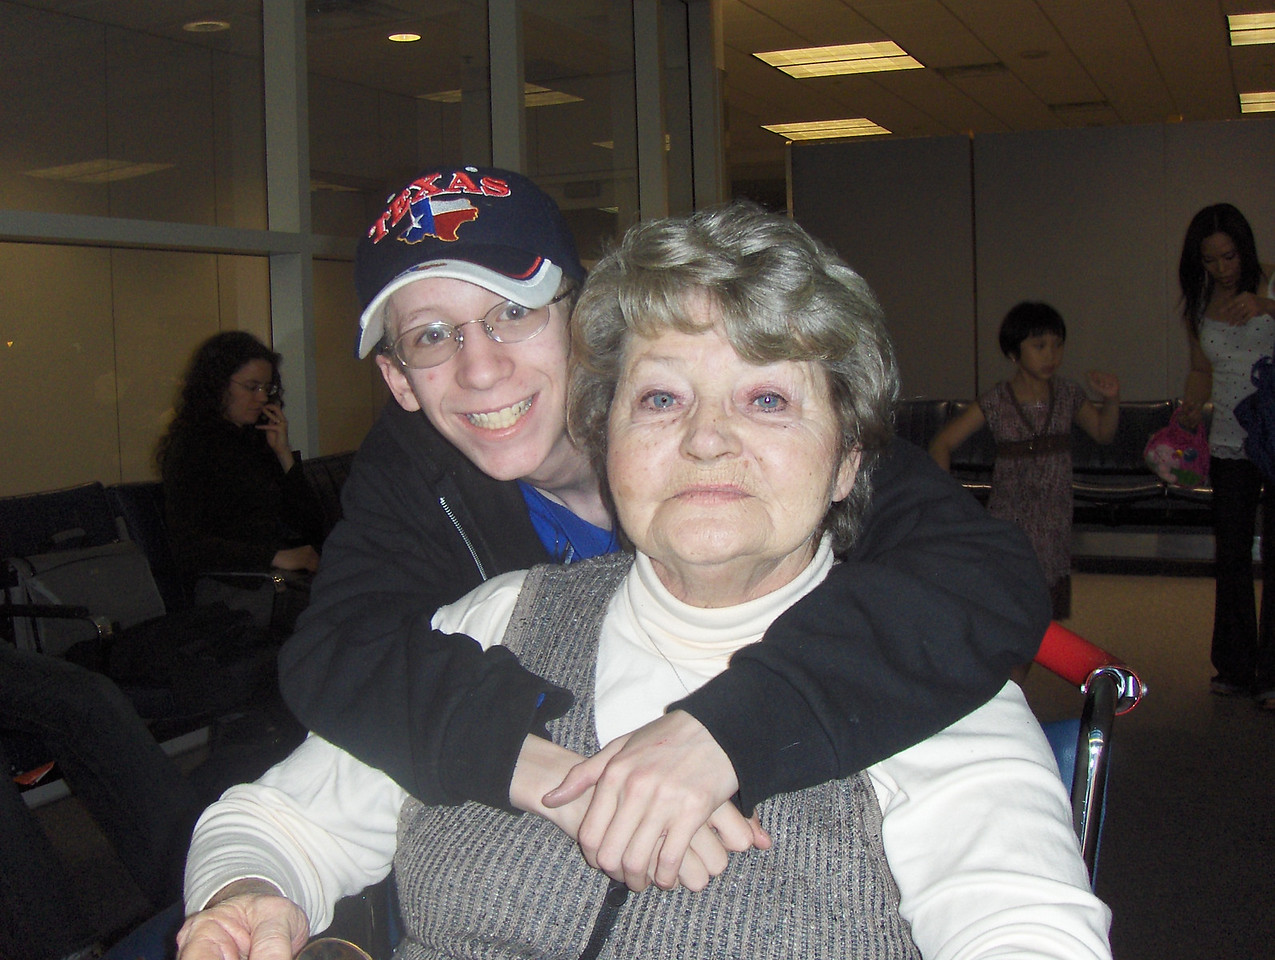 March 2008 - Tony and Gramma Jeanette (my mom) at the DFW Airport Texas - we were waiting for our flight - moving her to Colorado